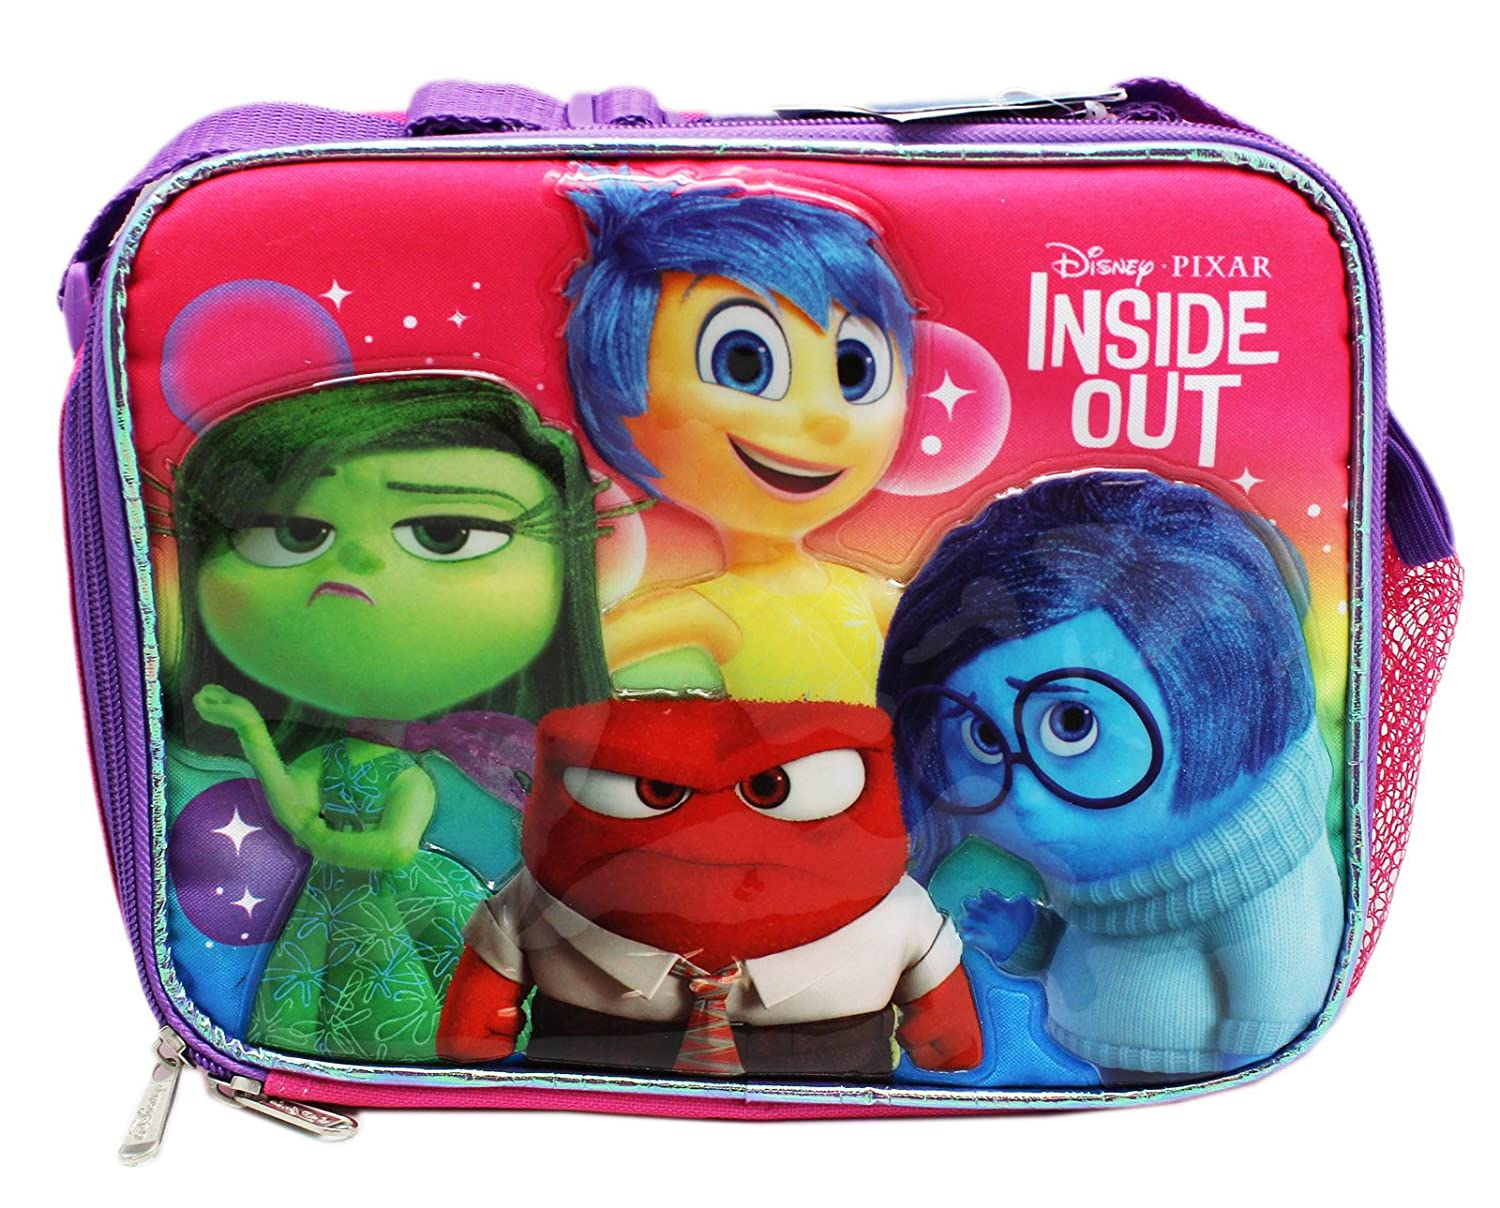 Disney Pixar Inside Out Lunch Bag by insid out 5366